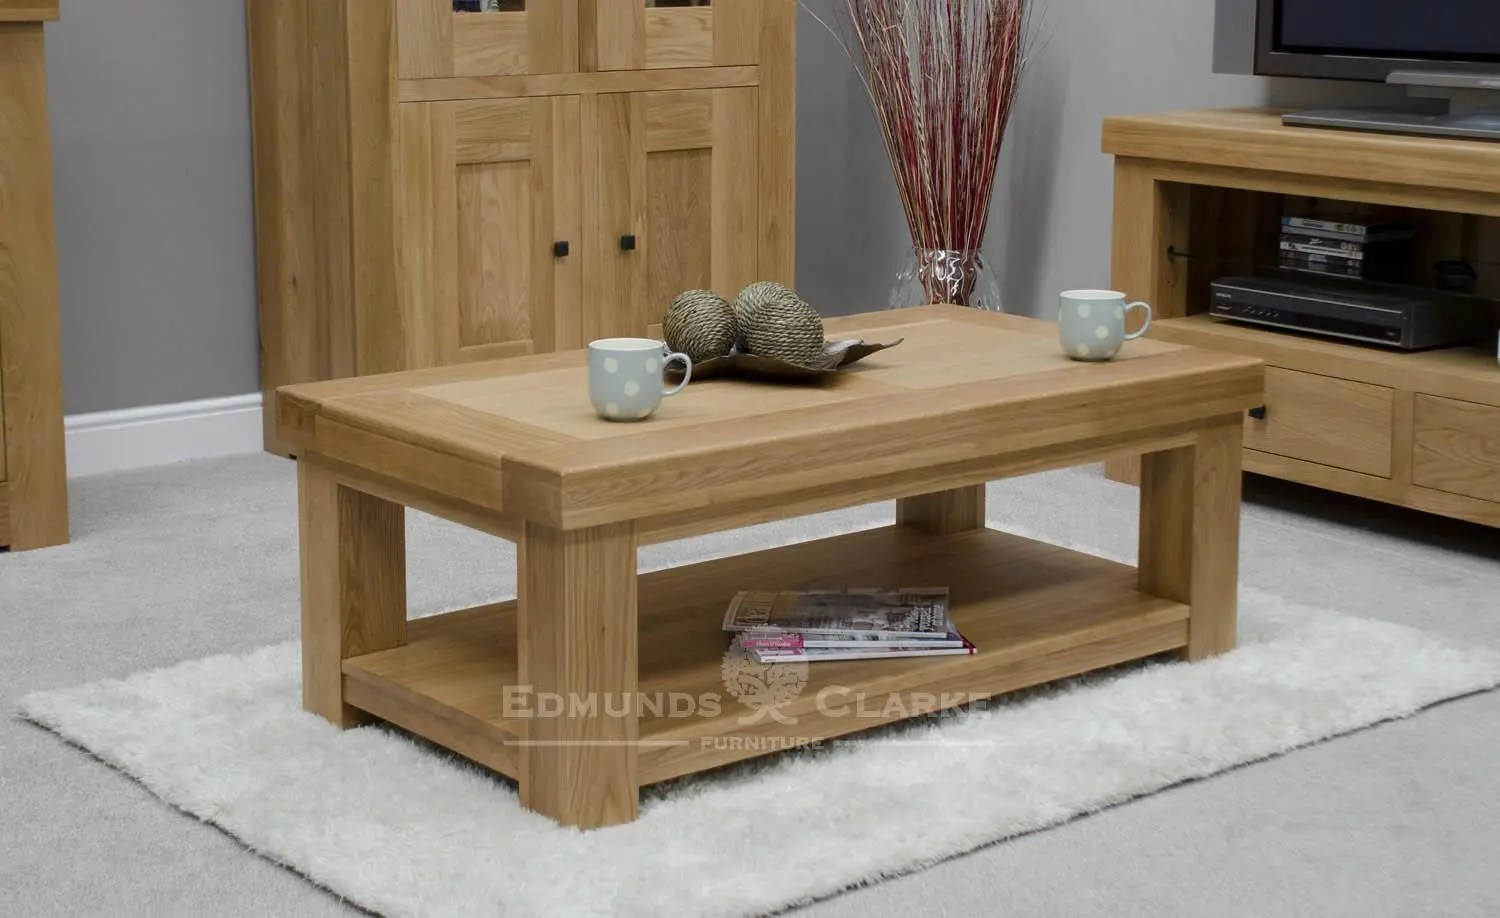 Hadleigh Solid Oak Chunky Coffee Table With Shelf